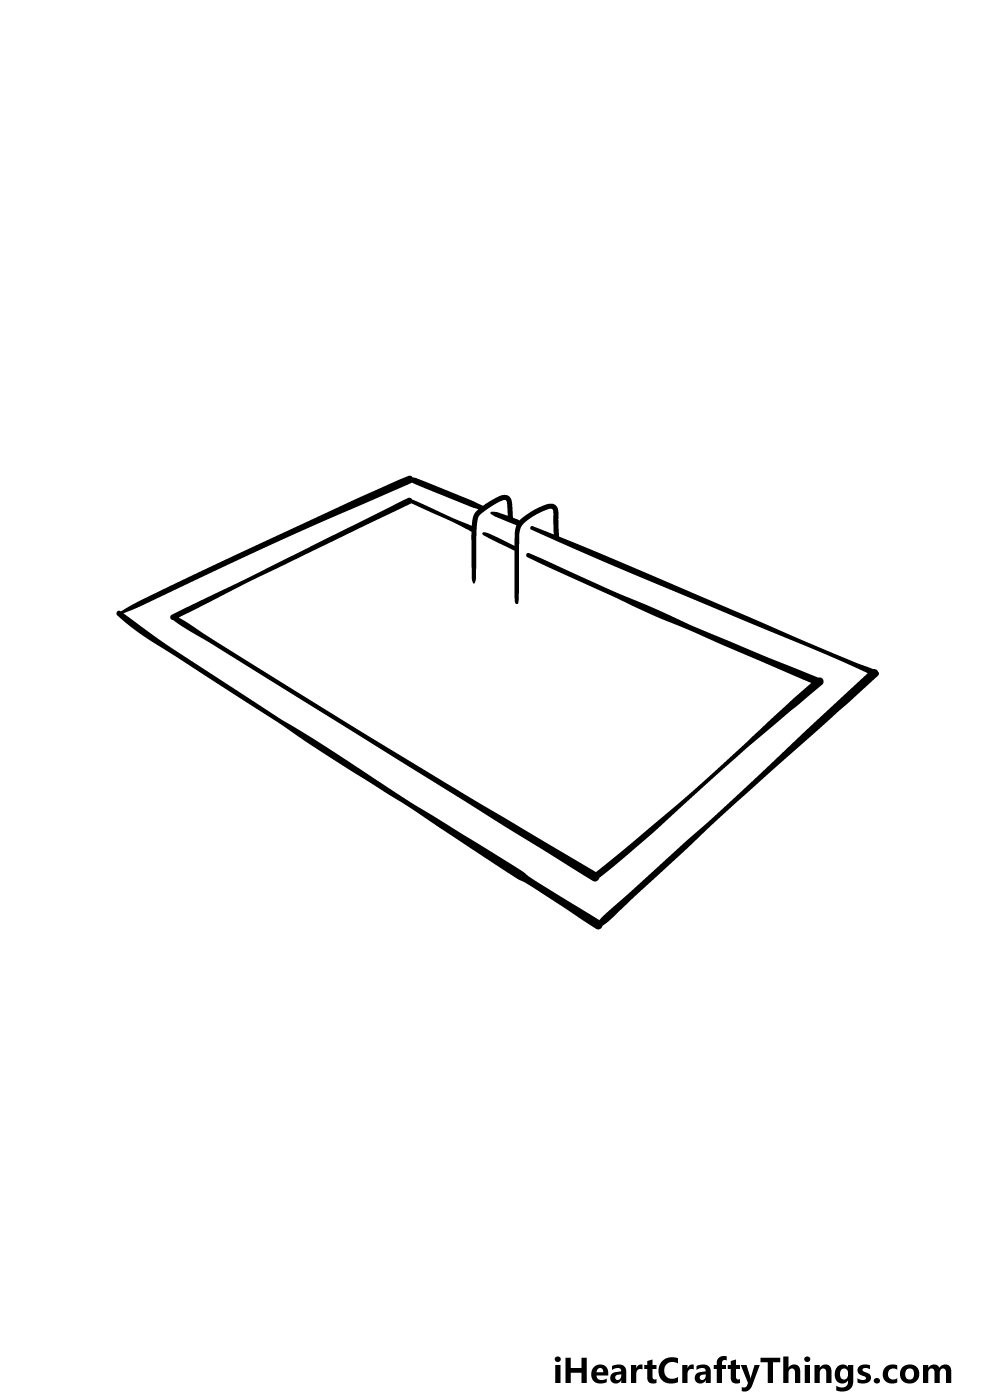 drawing a pool step 2